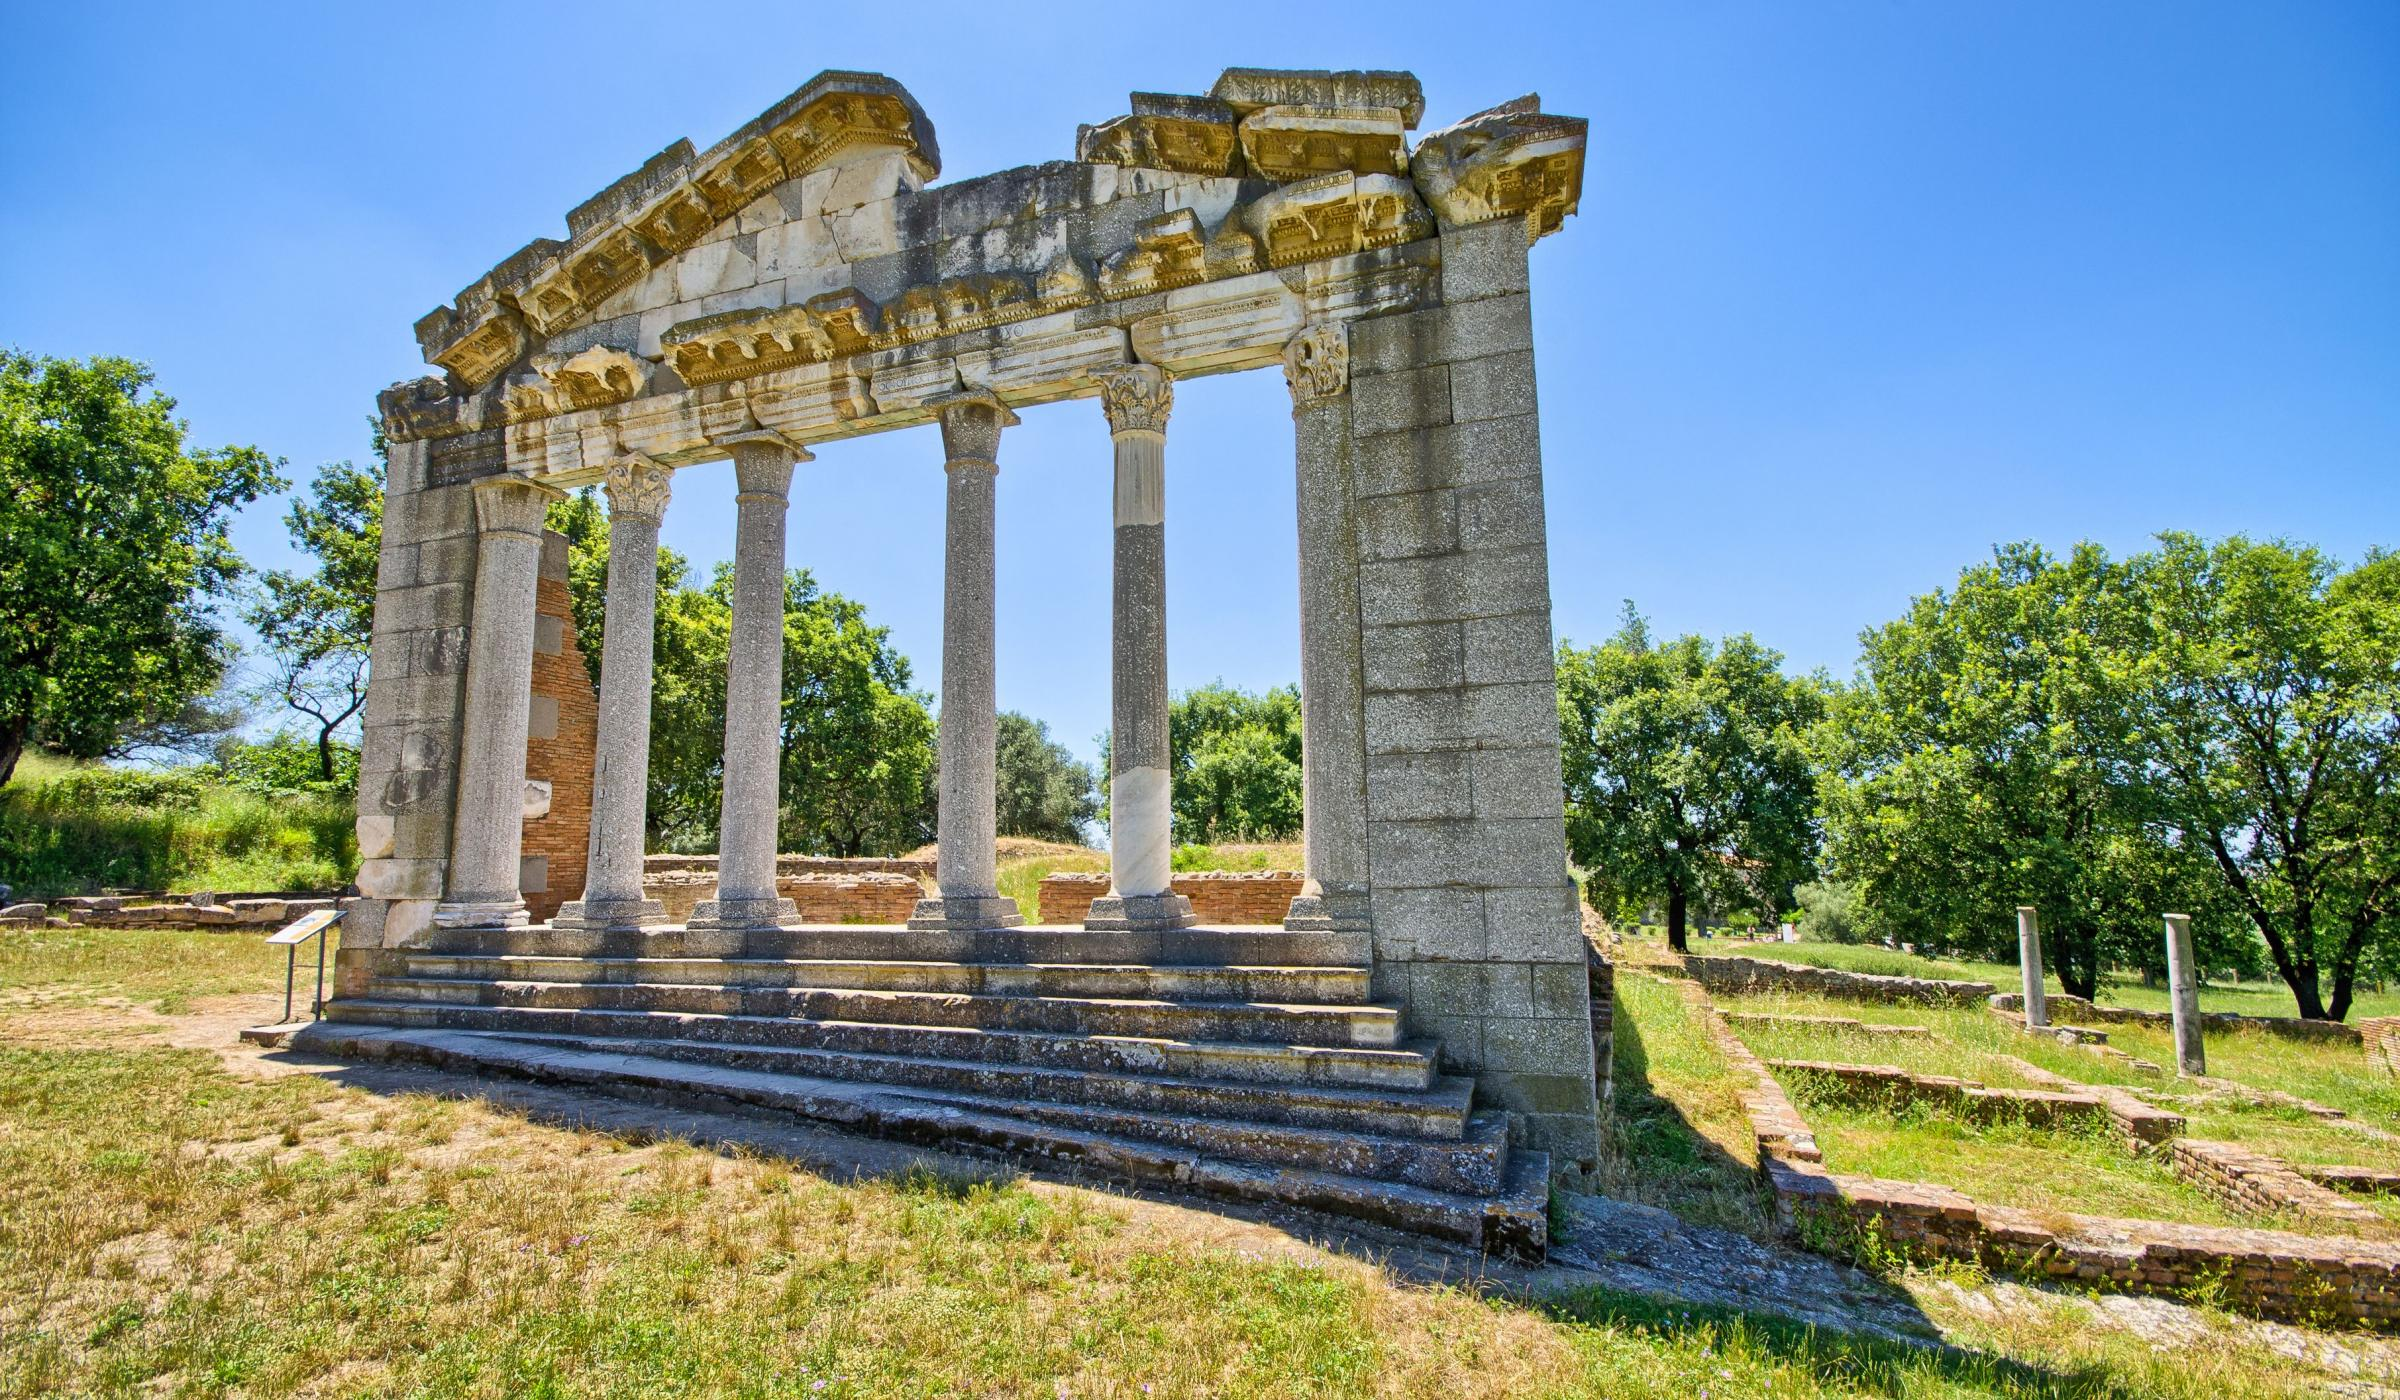 Sightsee major archaeological sites